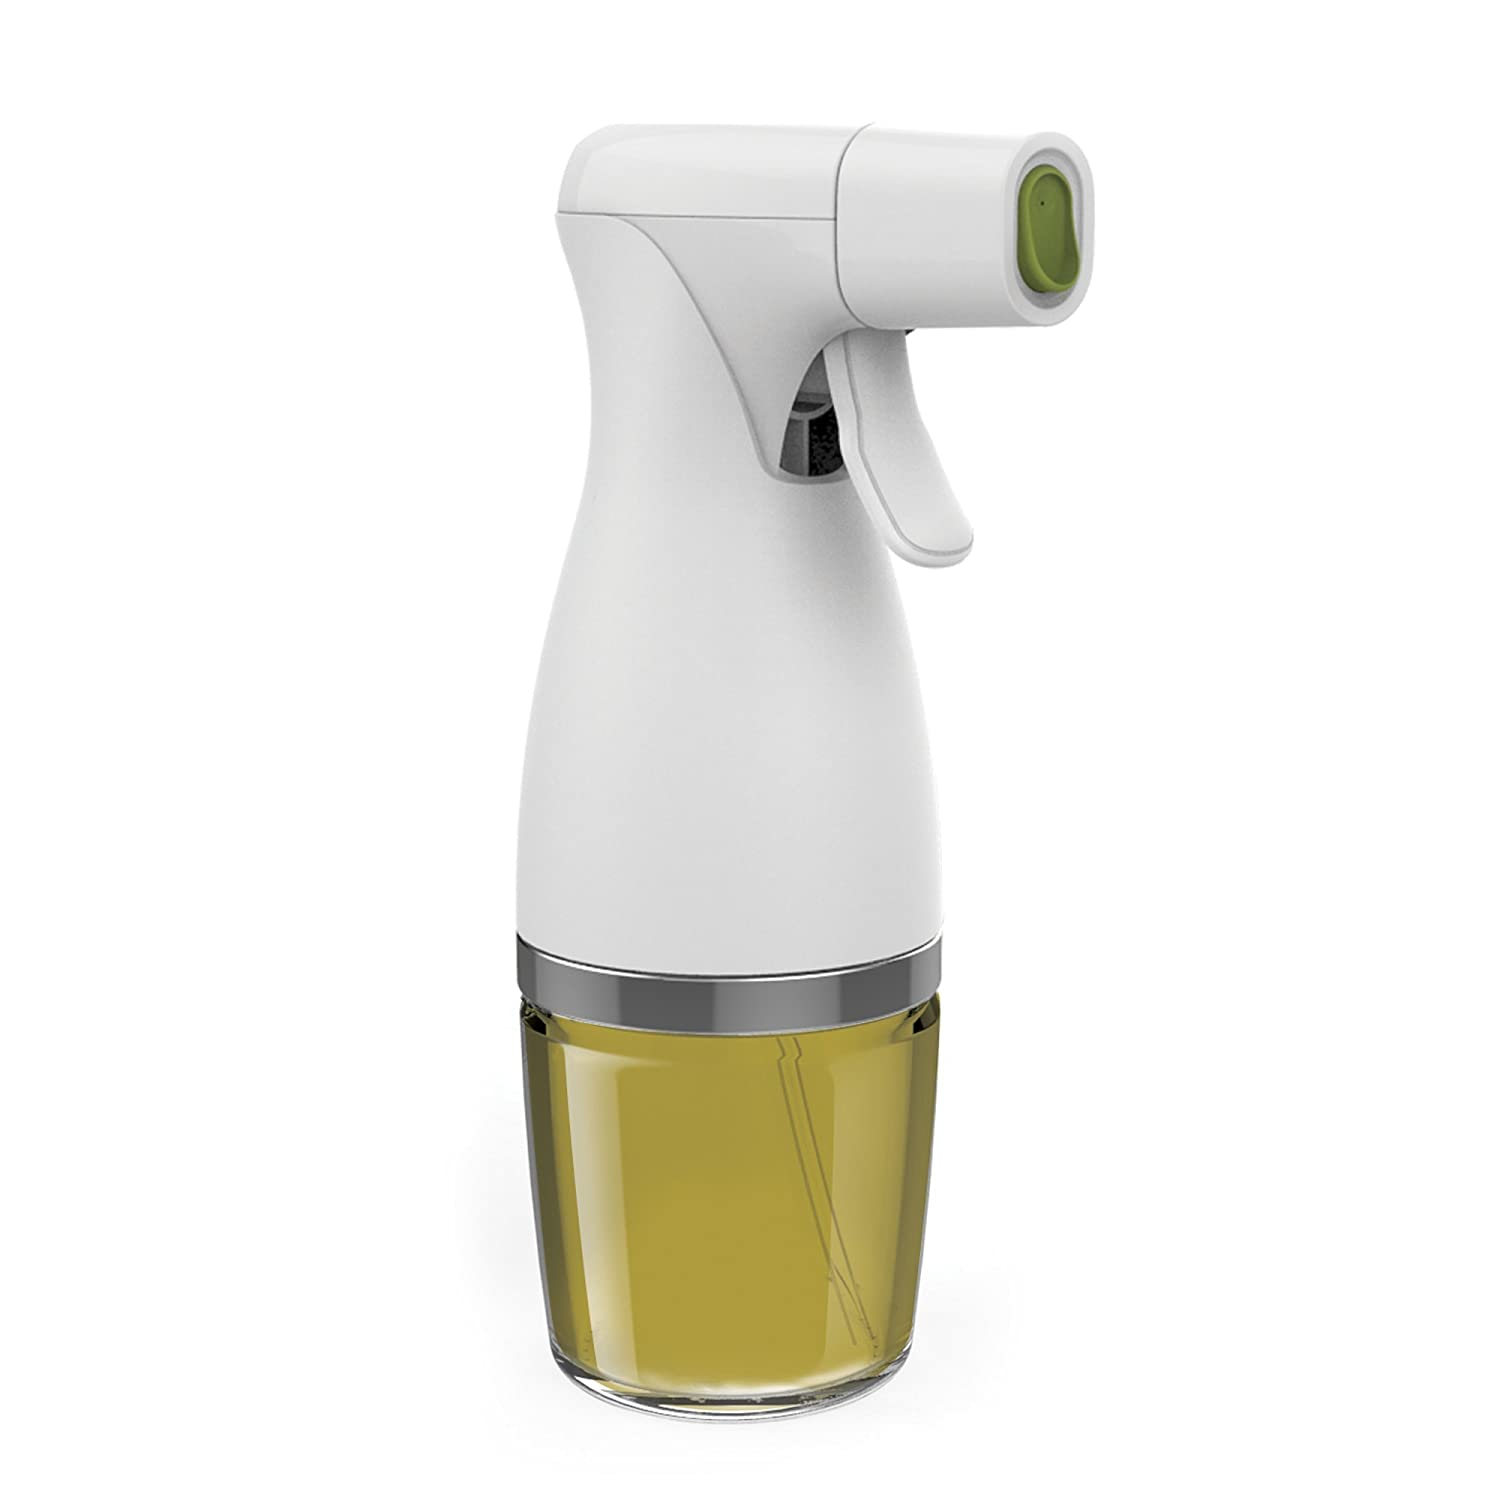 Prepara 2016 for for Kitchen and Grill, Simply Mist, Glass Healthy Eating Trigger Oil Sprayer, one size, White